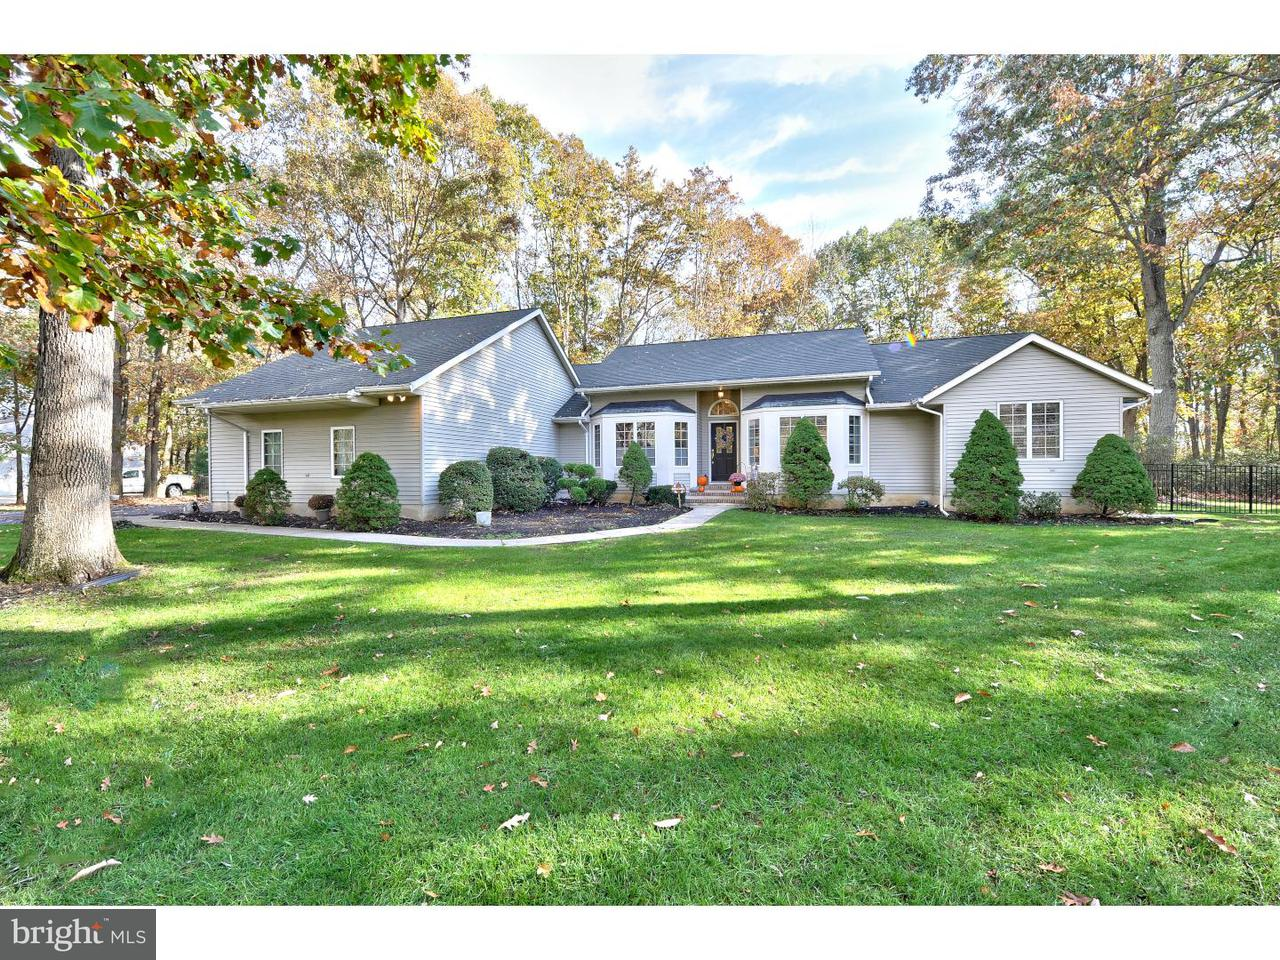 Single Family Home for Sale at 5 PIN OAK Drive New Egypt, New Jersey 08533 United States